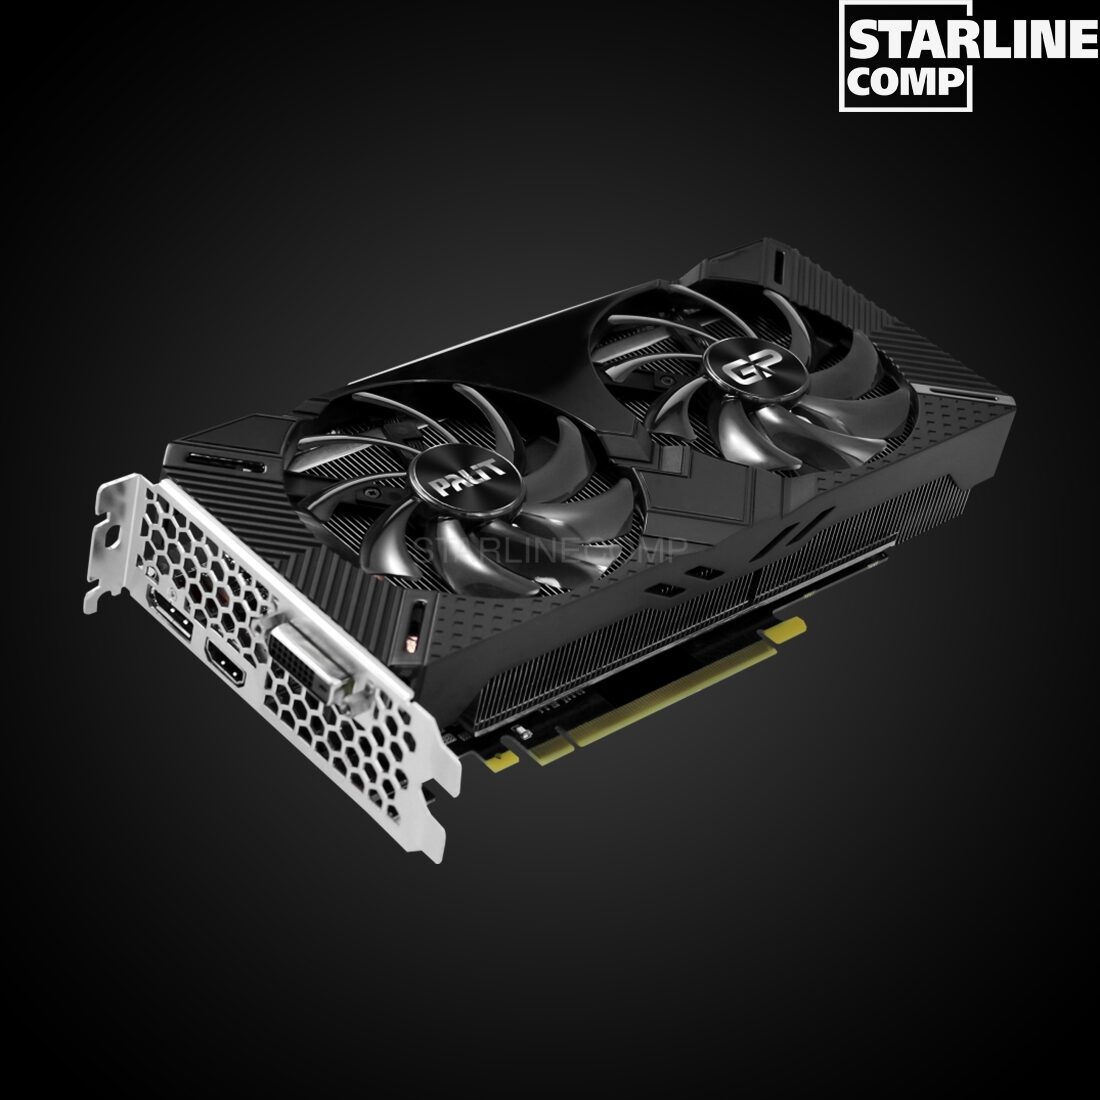 PALIT GAMING PRO OC GEFORCE RTX 2060 6GB